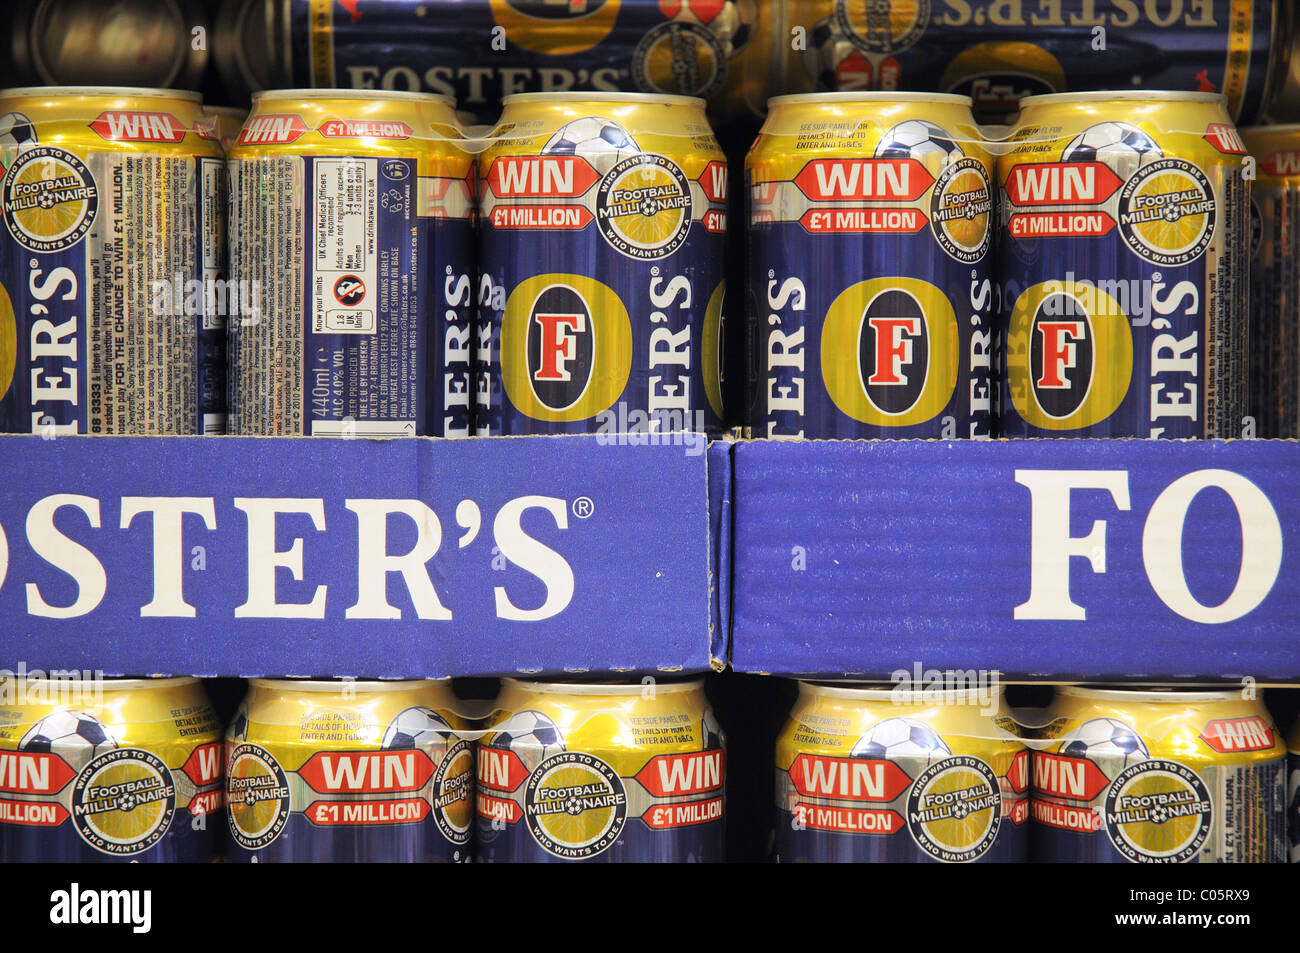 Fosters lager on a shelf in a supermarket in England - Stock Image